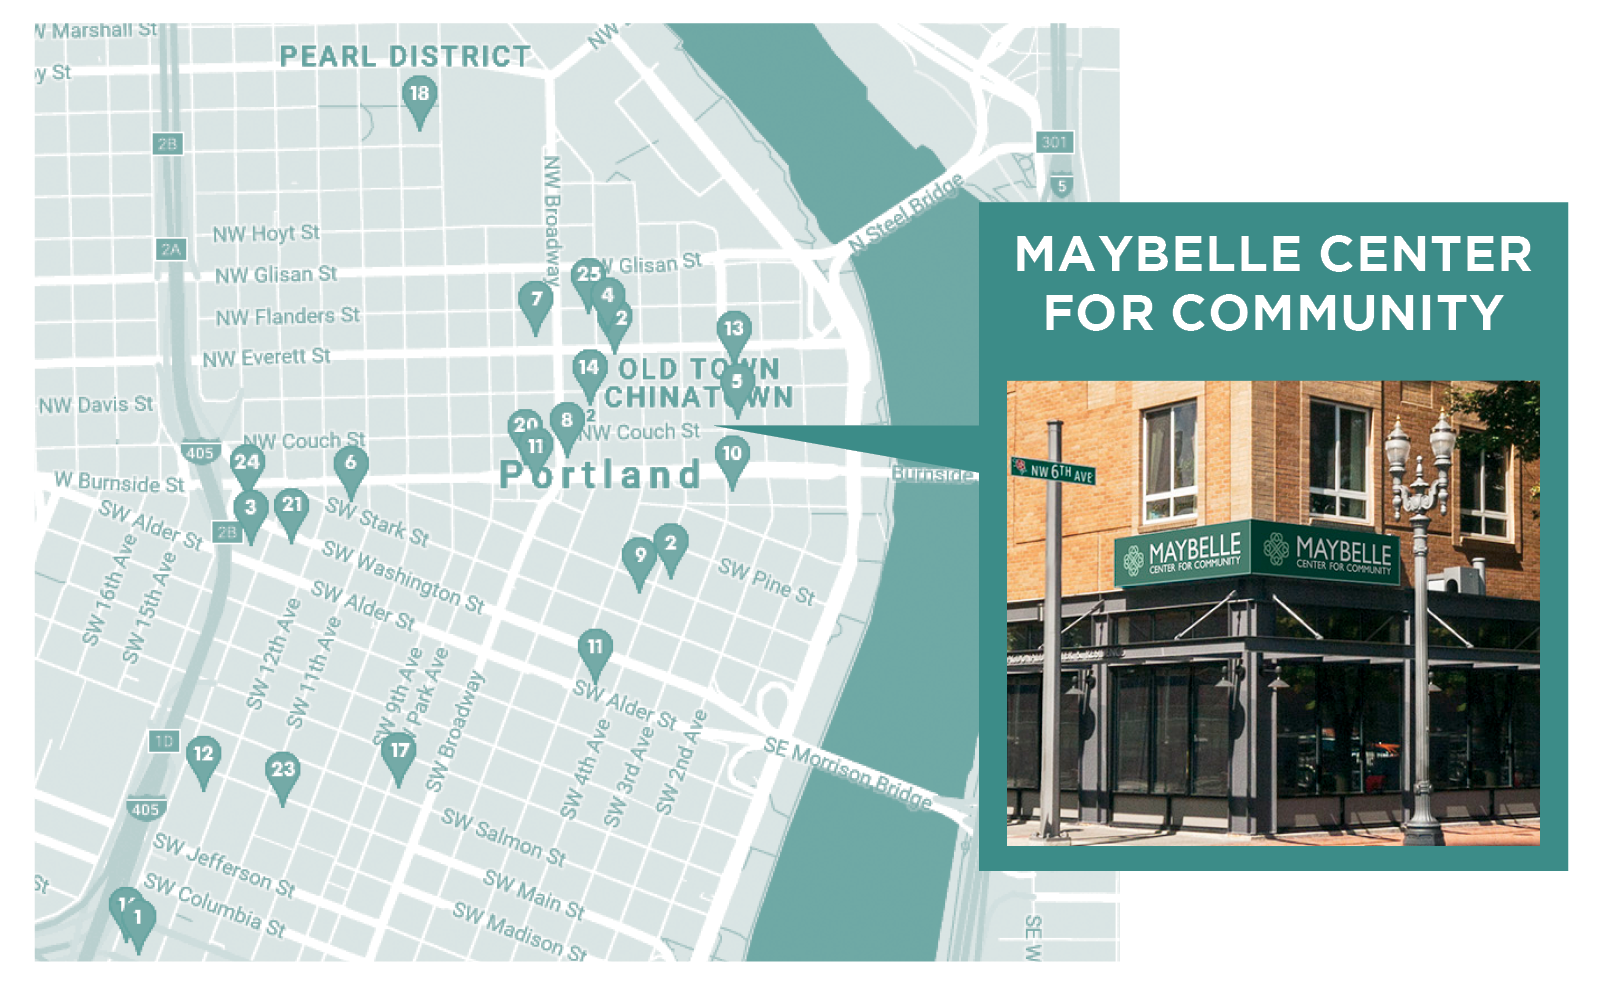 Building Map | Maybelle Center for Community on downtown fremont map, downtown galway map, downtown cumberland map, montavilla portland map, portland airport map, brooklyn map, downtown cardiff map, downtown jefferson city map, se portland map, portland zip code map, downtown ogunquit map, downtown bismarck map, u of portland map, downtown san diego map, downtown lake oswego map, downtown bridgeport map, downtown seattle map, downtown oregon city map, paramount hotel portland map, downtown denton map,